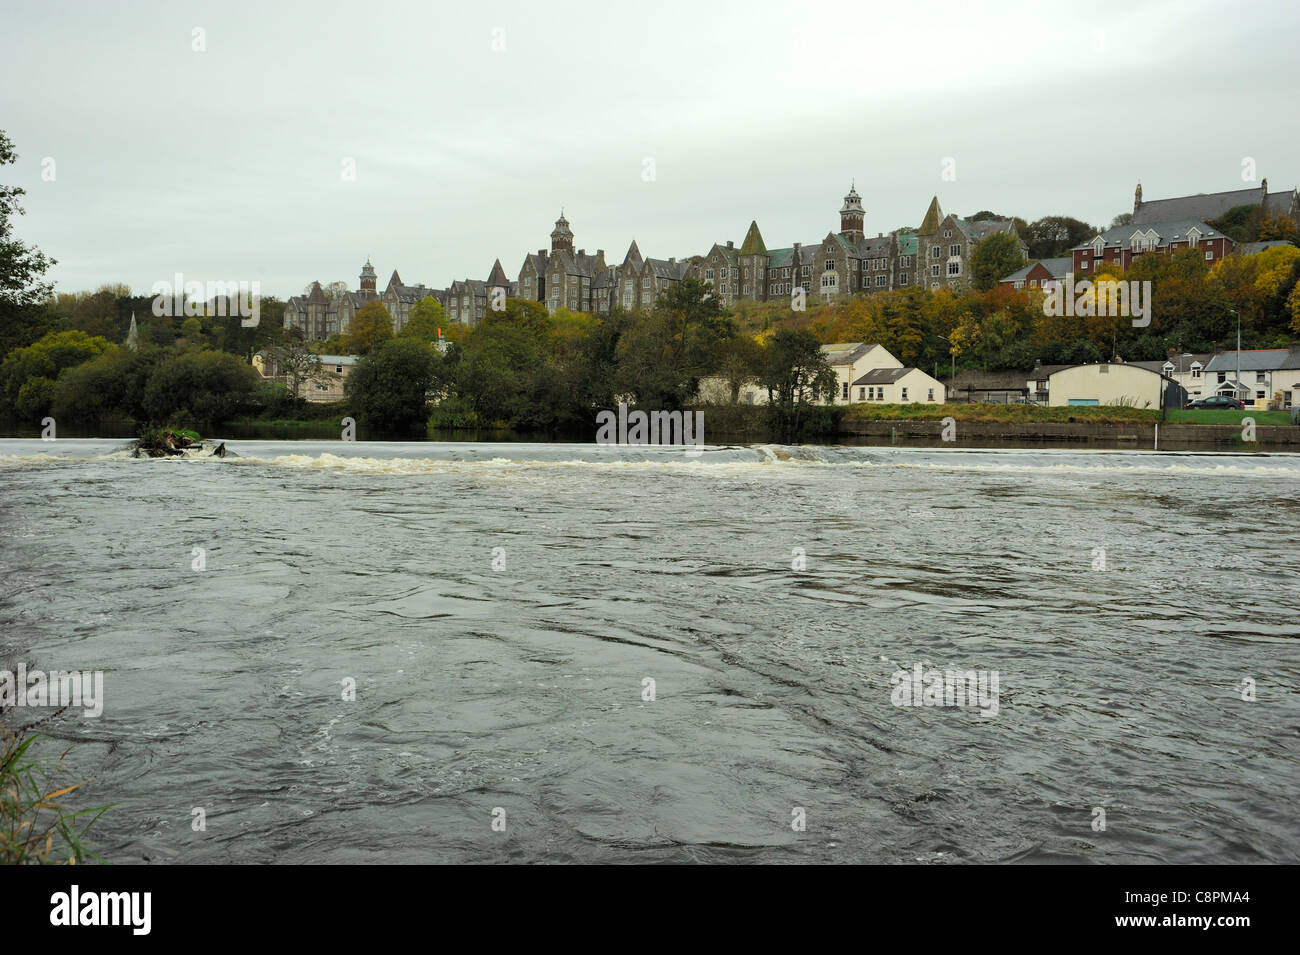 Atkins Hall and River Lee weir, Cork City, (was Our Lady's Psychiatric Hospital Cork) - Stock Image